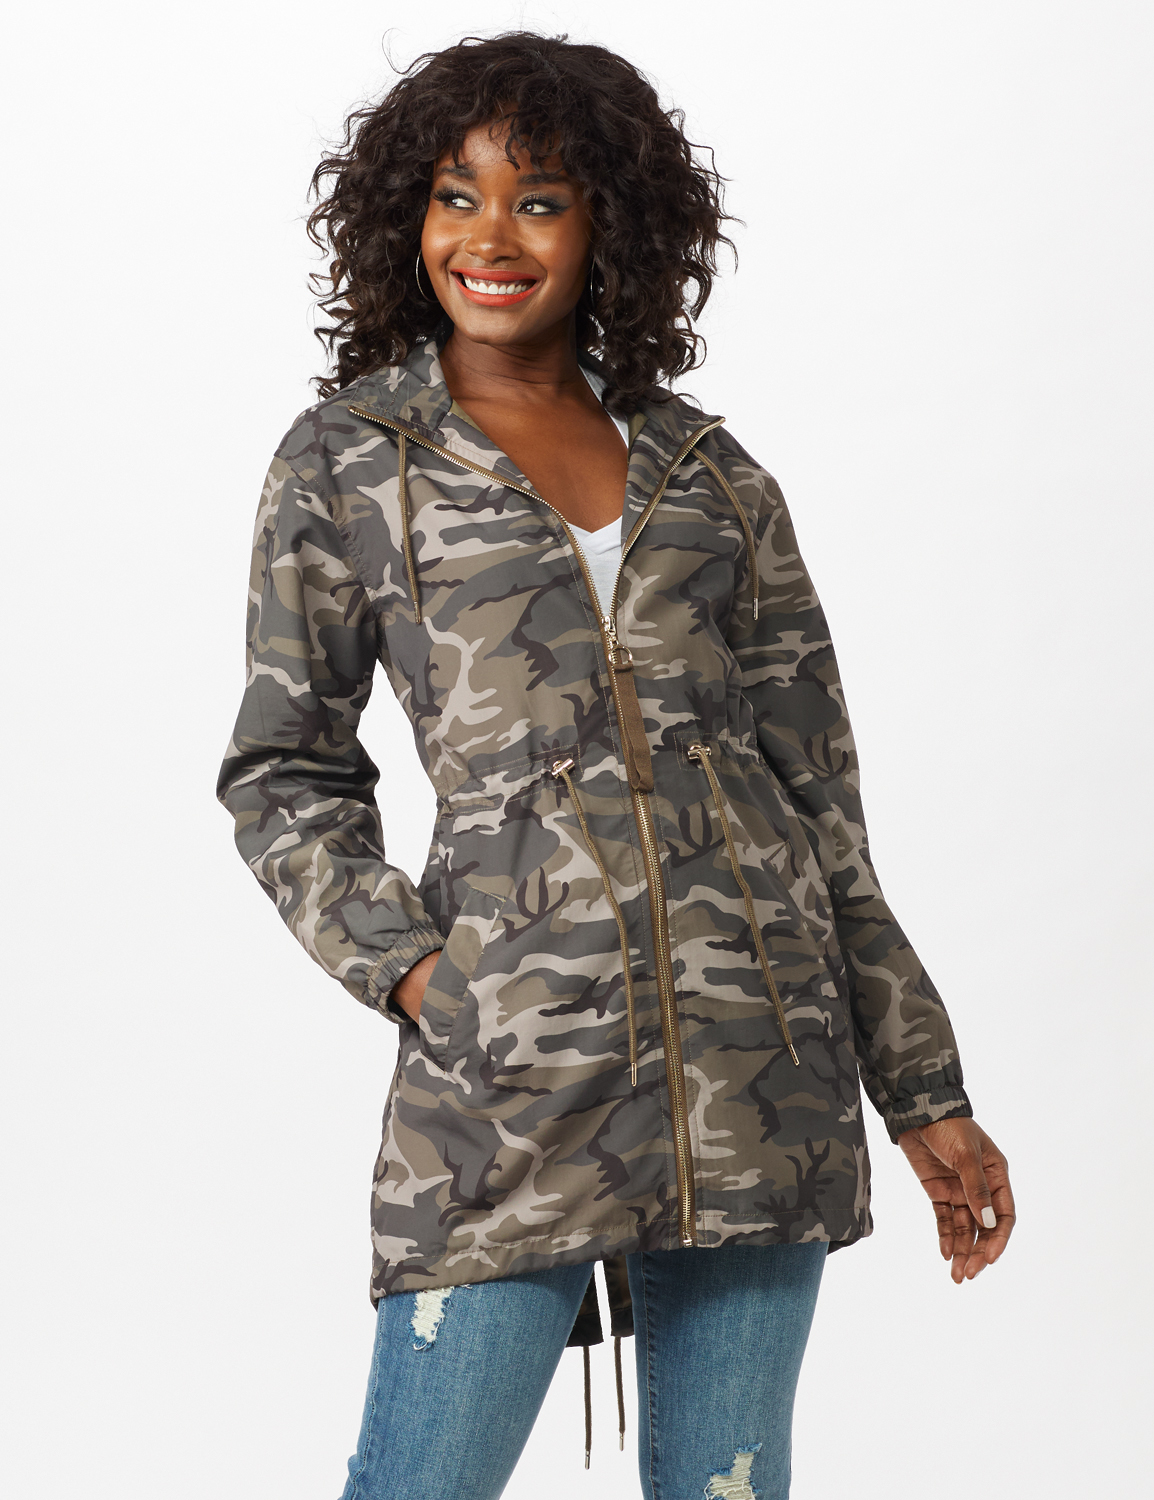 Dry Nylon Camo Zip Front Hooded Utility Jacket with Draw Cord -Olive - Front